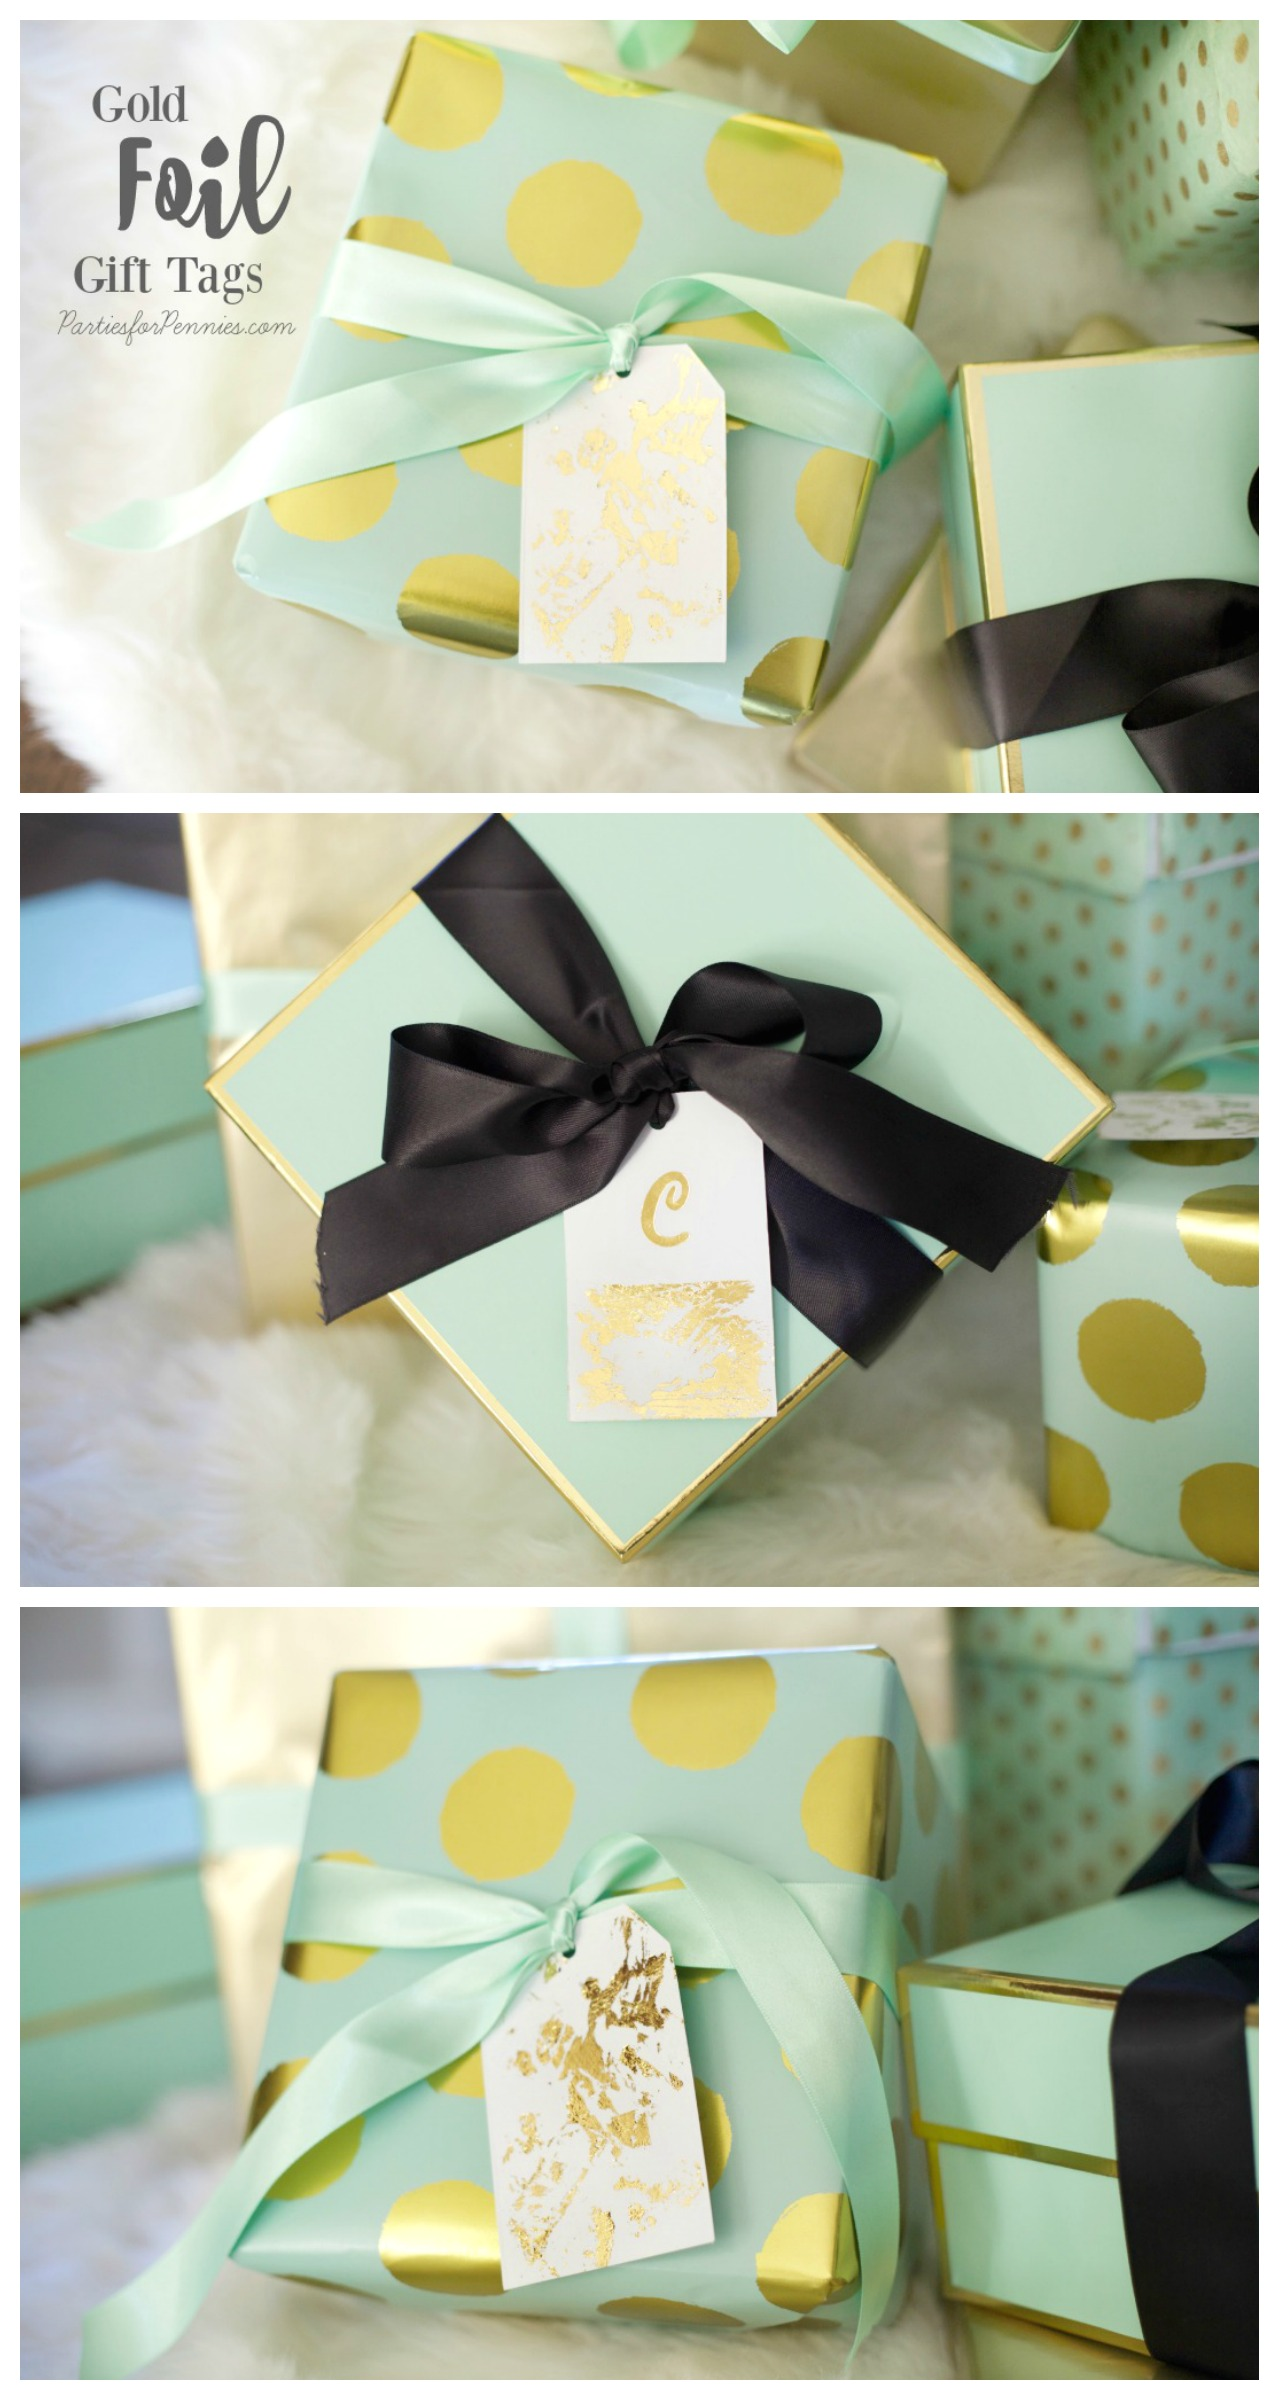 How to Make Gold Foil Gift Tags by PartiesforPennies.com | Christmas, Presents, Gifts, DIY, Gift Wrapping